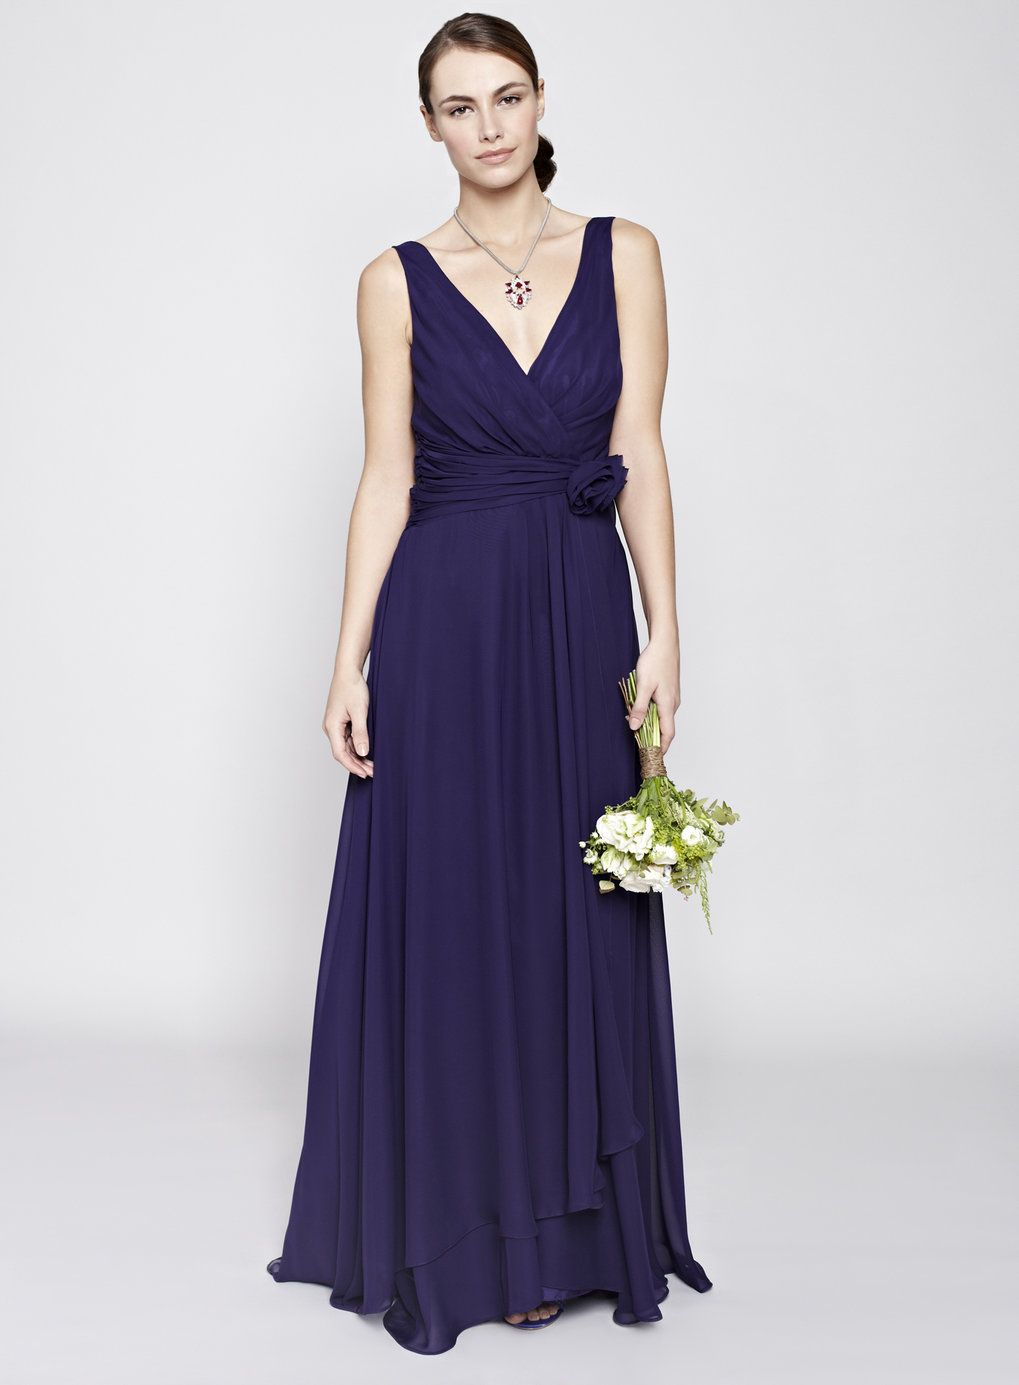 Beautiful purple bridesmaid dress from bhs thoughts xxx beautiful purple bridesmaid dress from bhs thoughts xxx ombrellifo Image collections